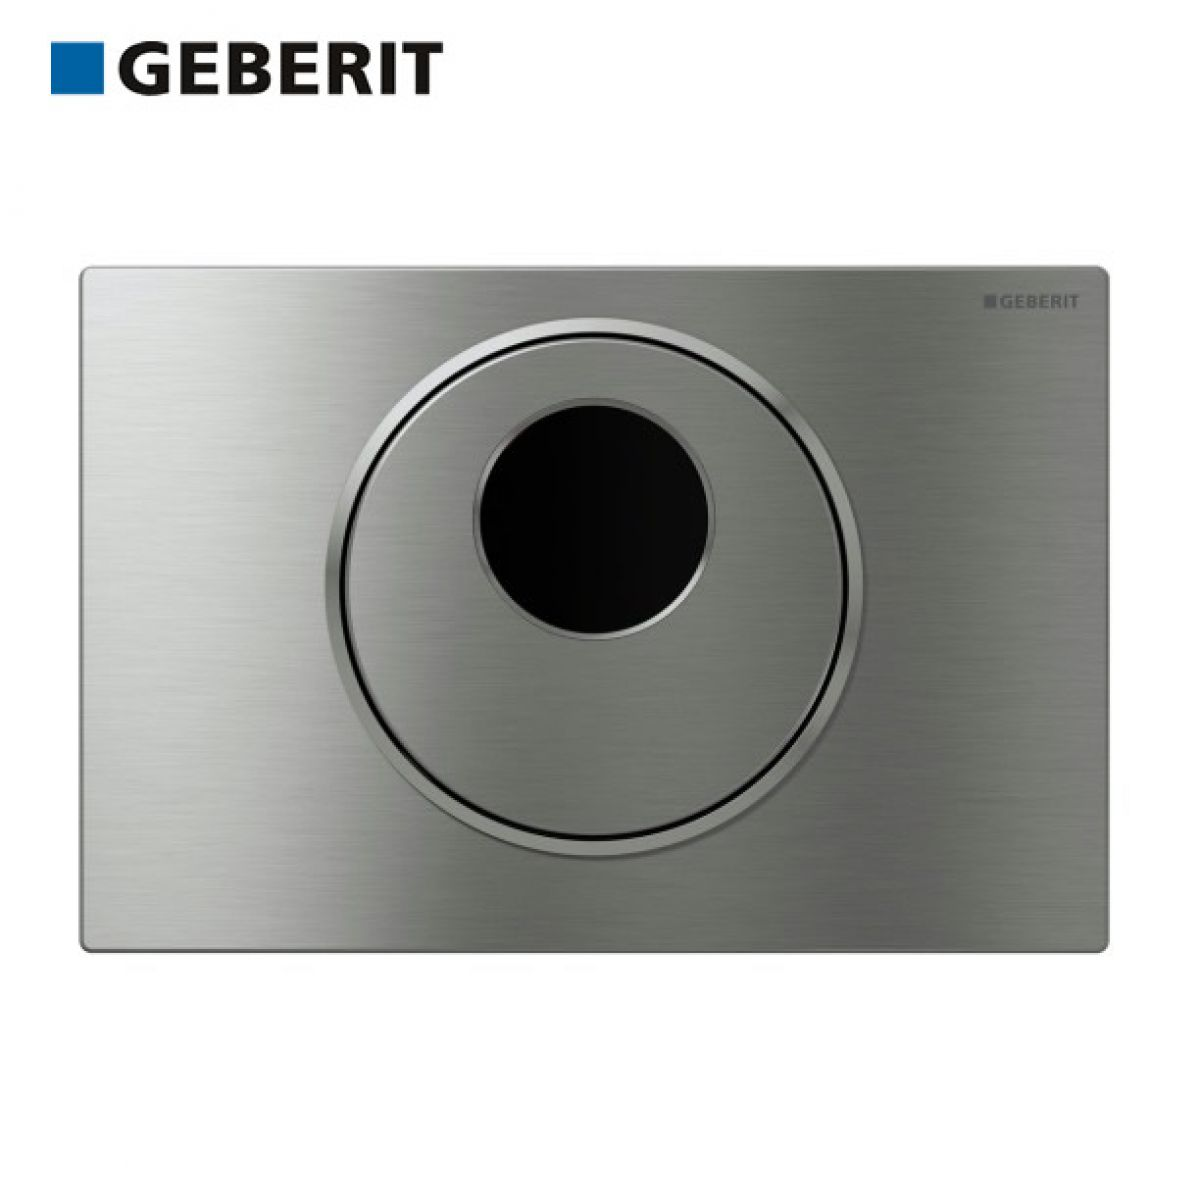 geberit touchless manual automatic dual flush plate uk bathrooms. Black Bedroom Furniture Sets. Home Design Ideas